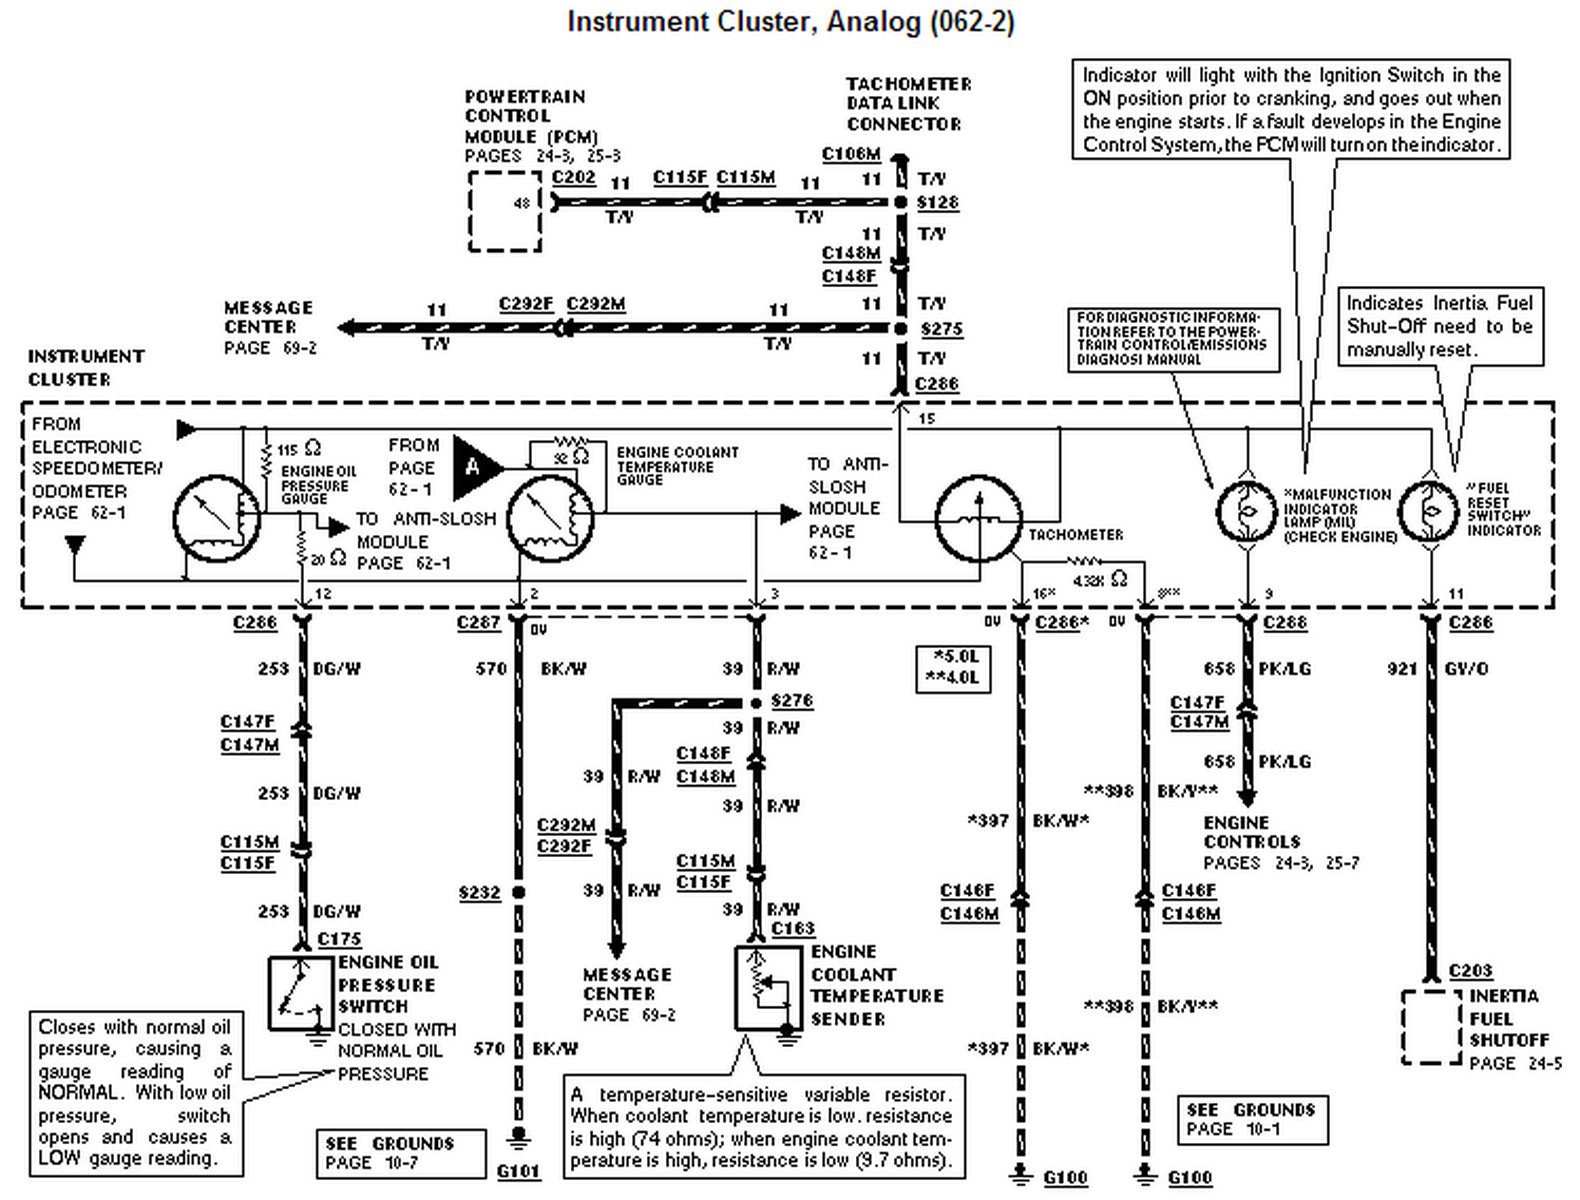 2001 F150 Wiring Diagram Mileage Indicator - Wiring Diagram •